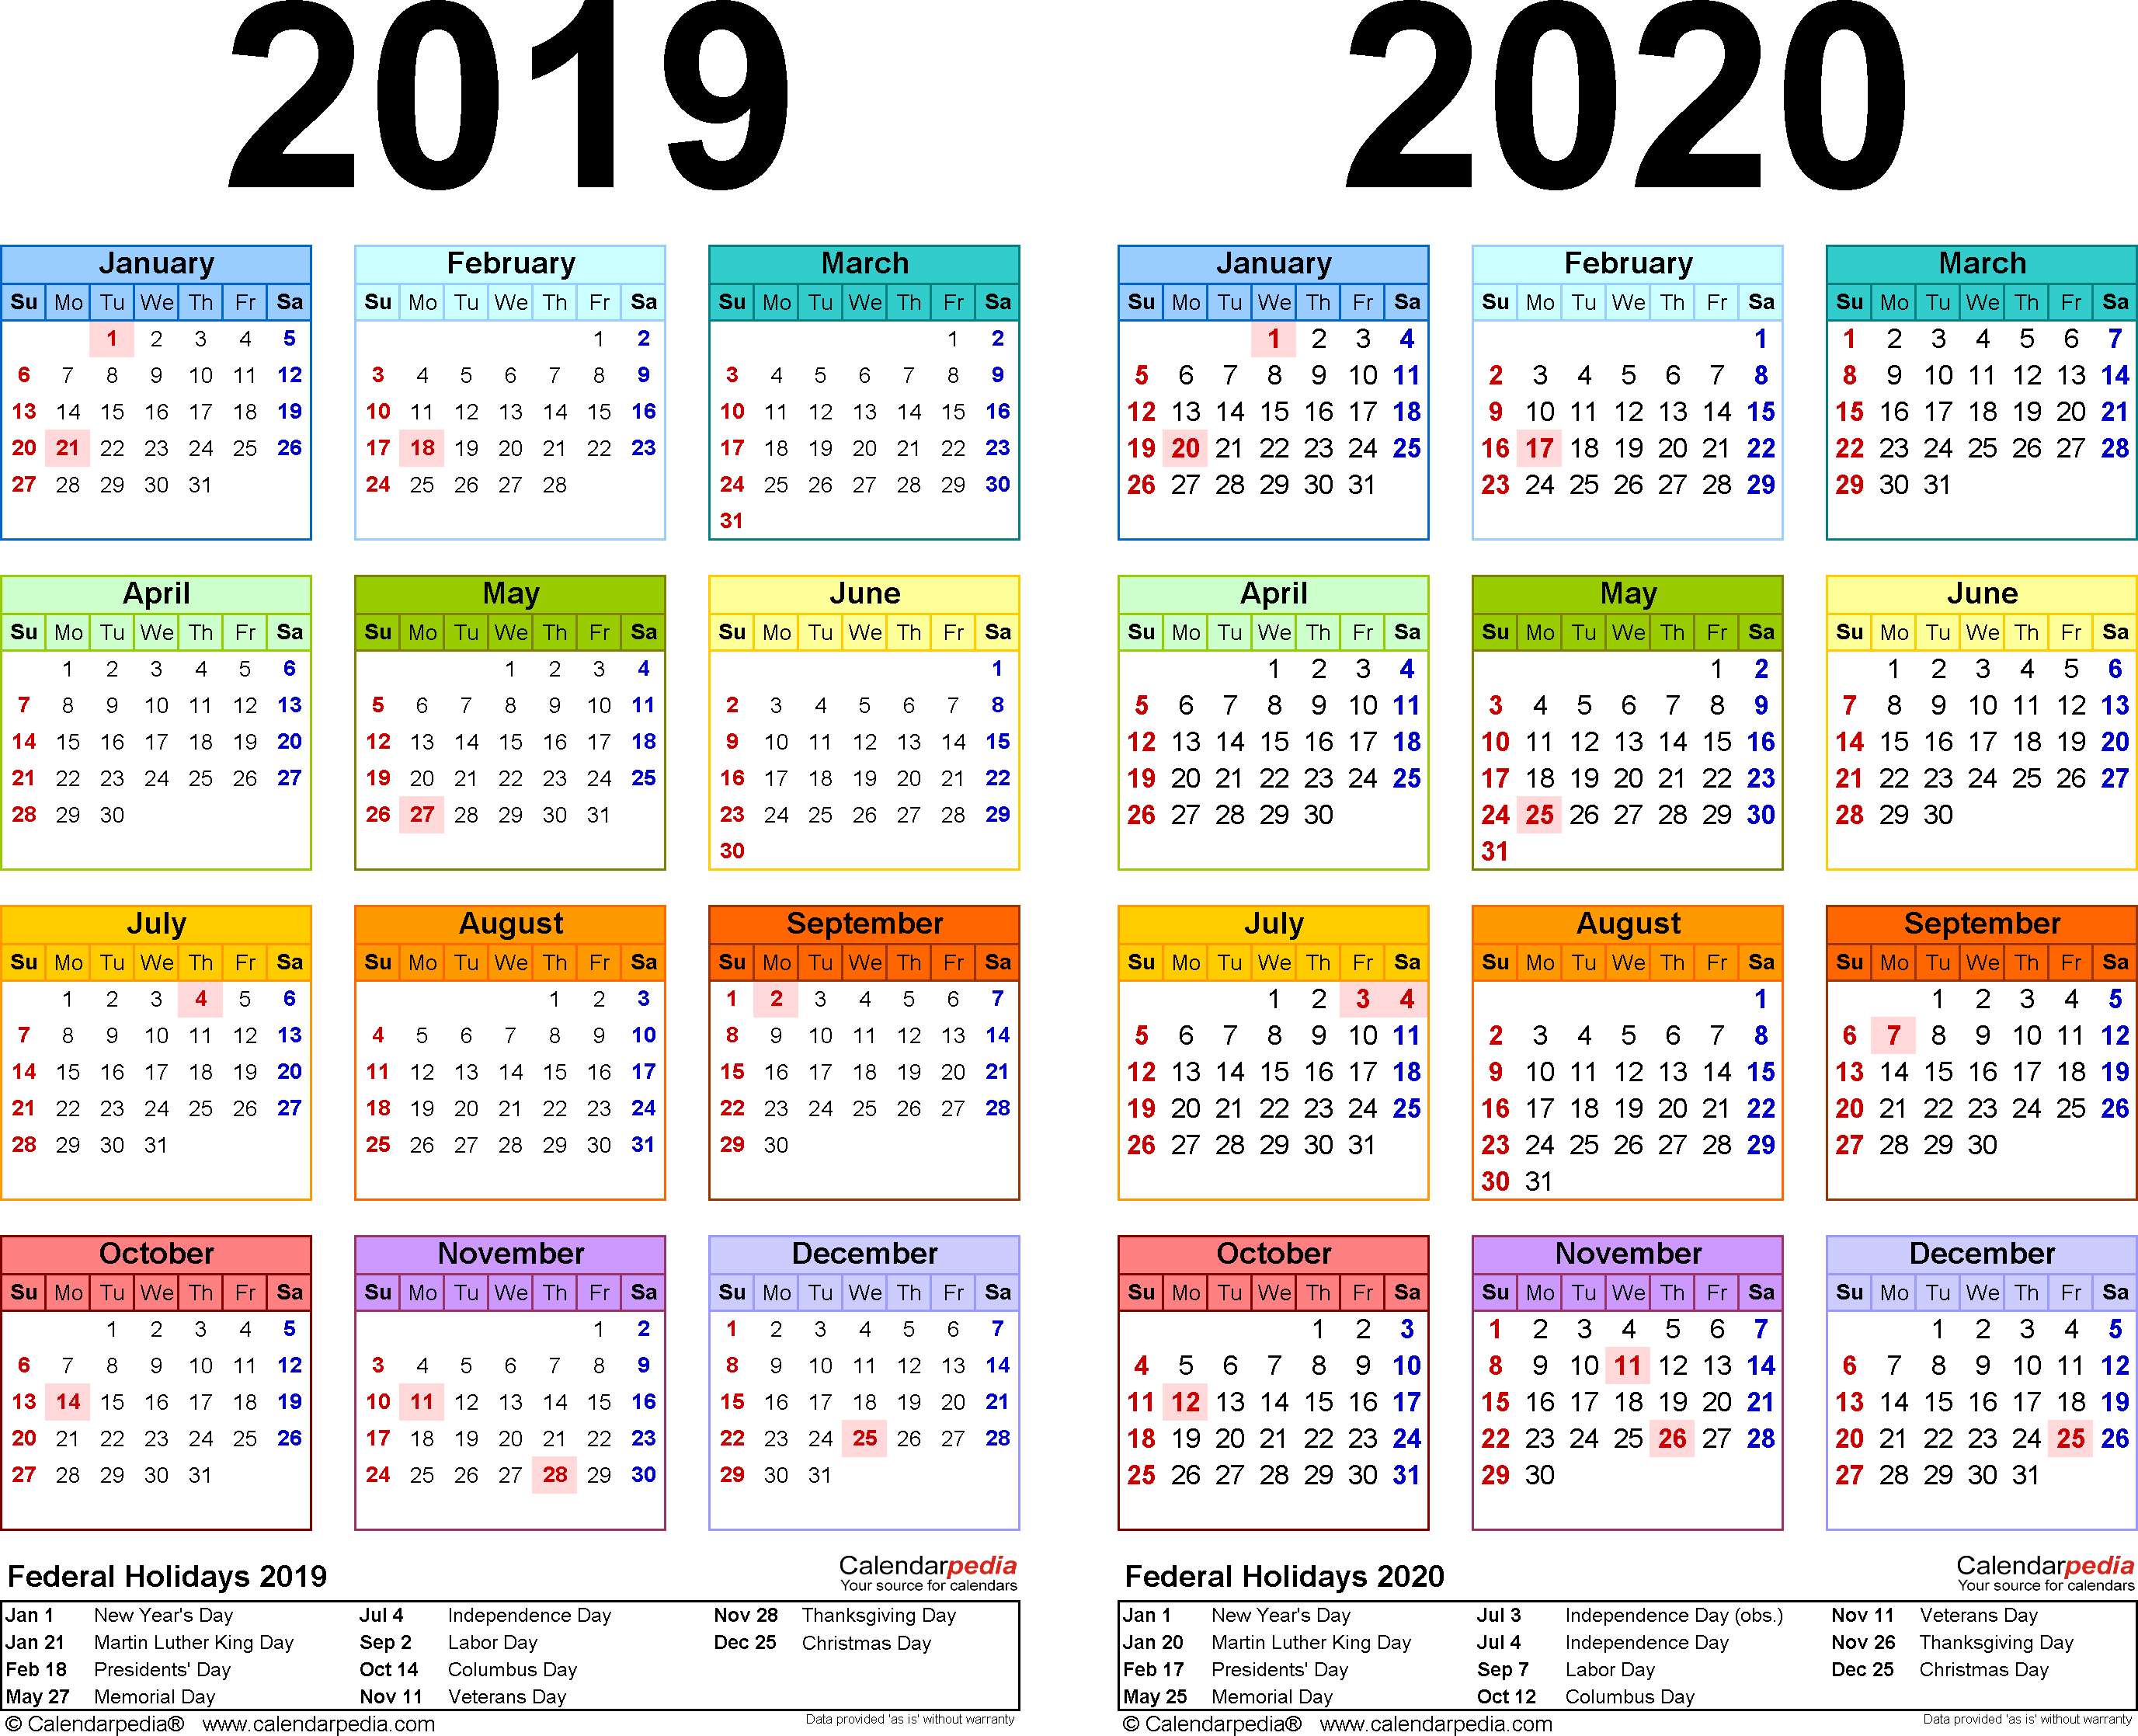 2019-2020 Calendar - Free Printable Two-Year Excel Calendars intended for Three Year Calendar 2020 -2023